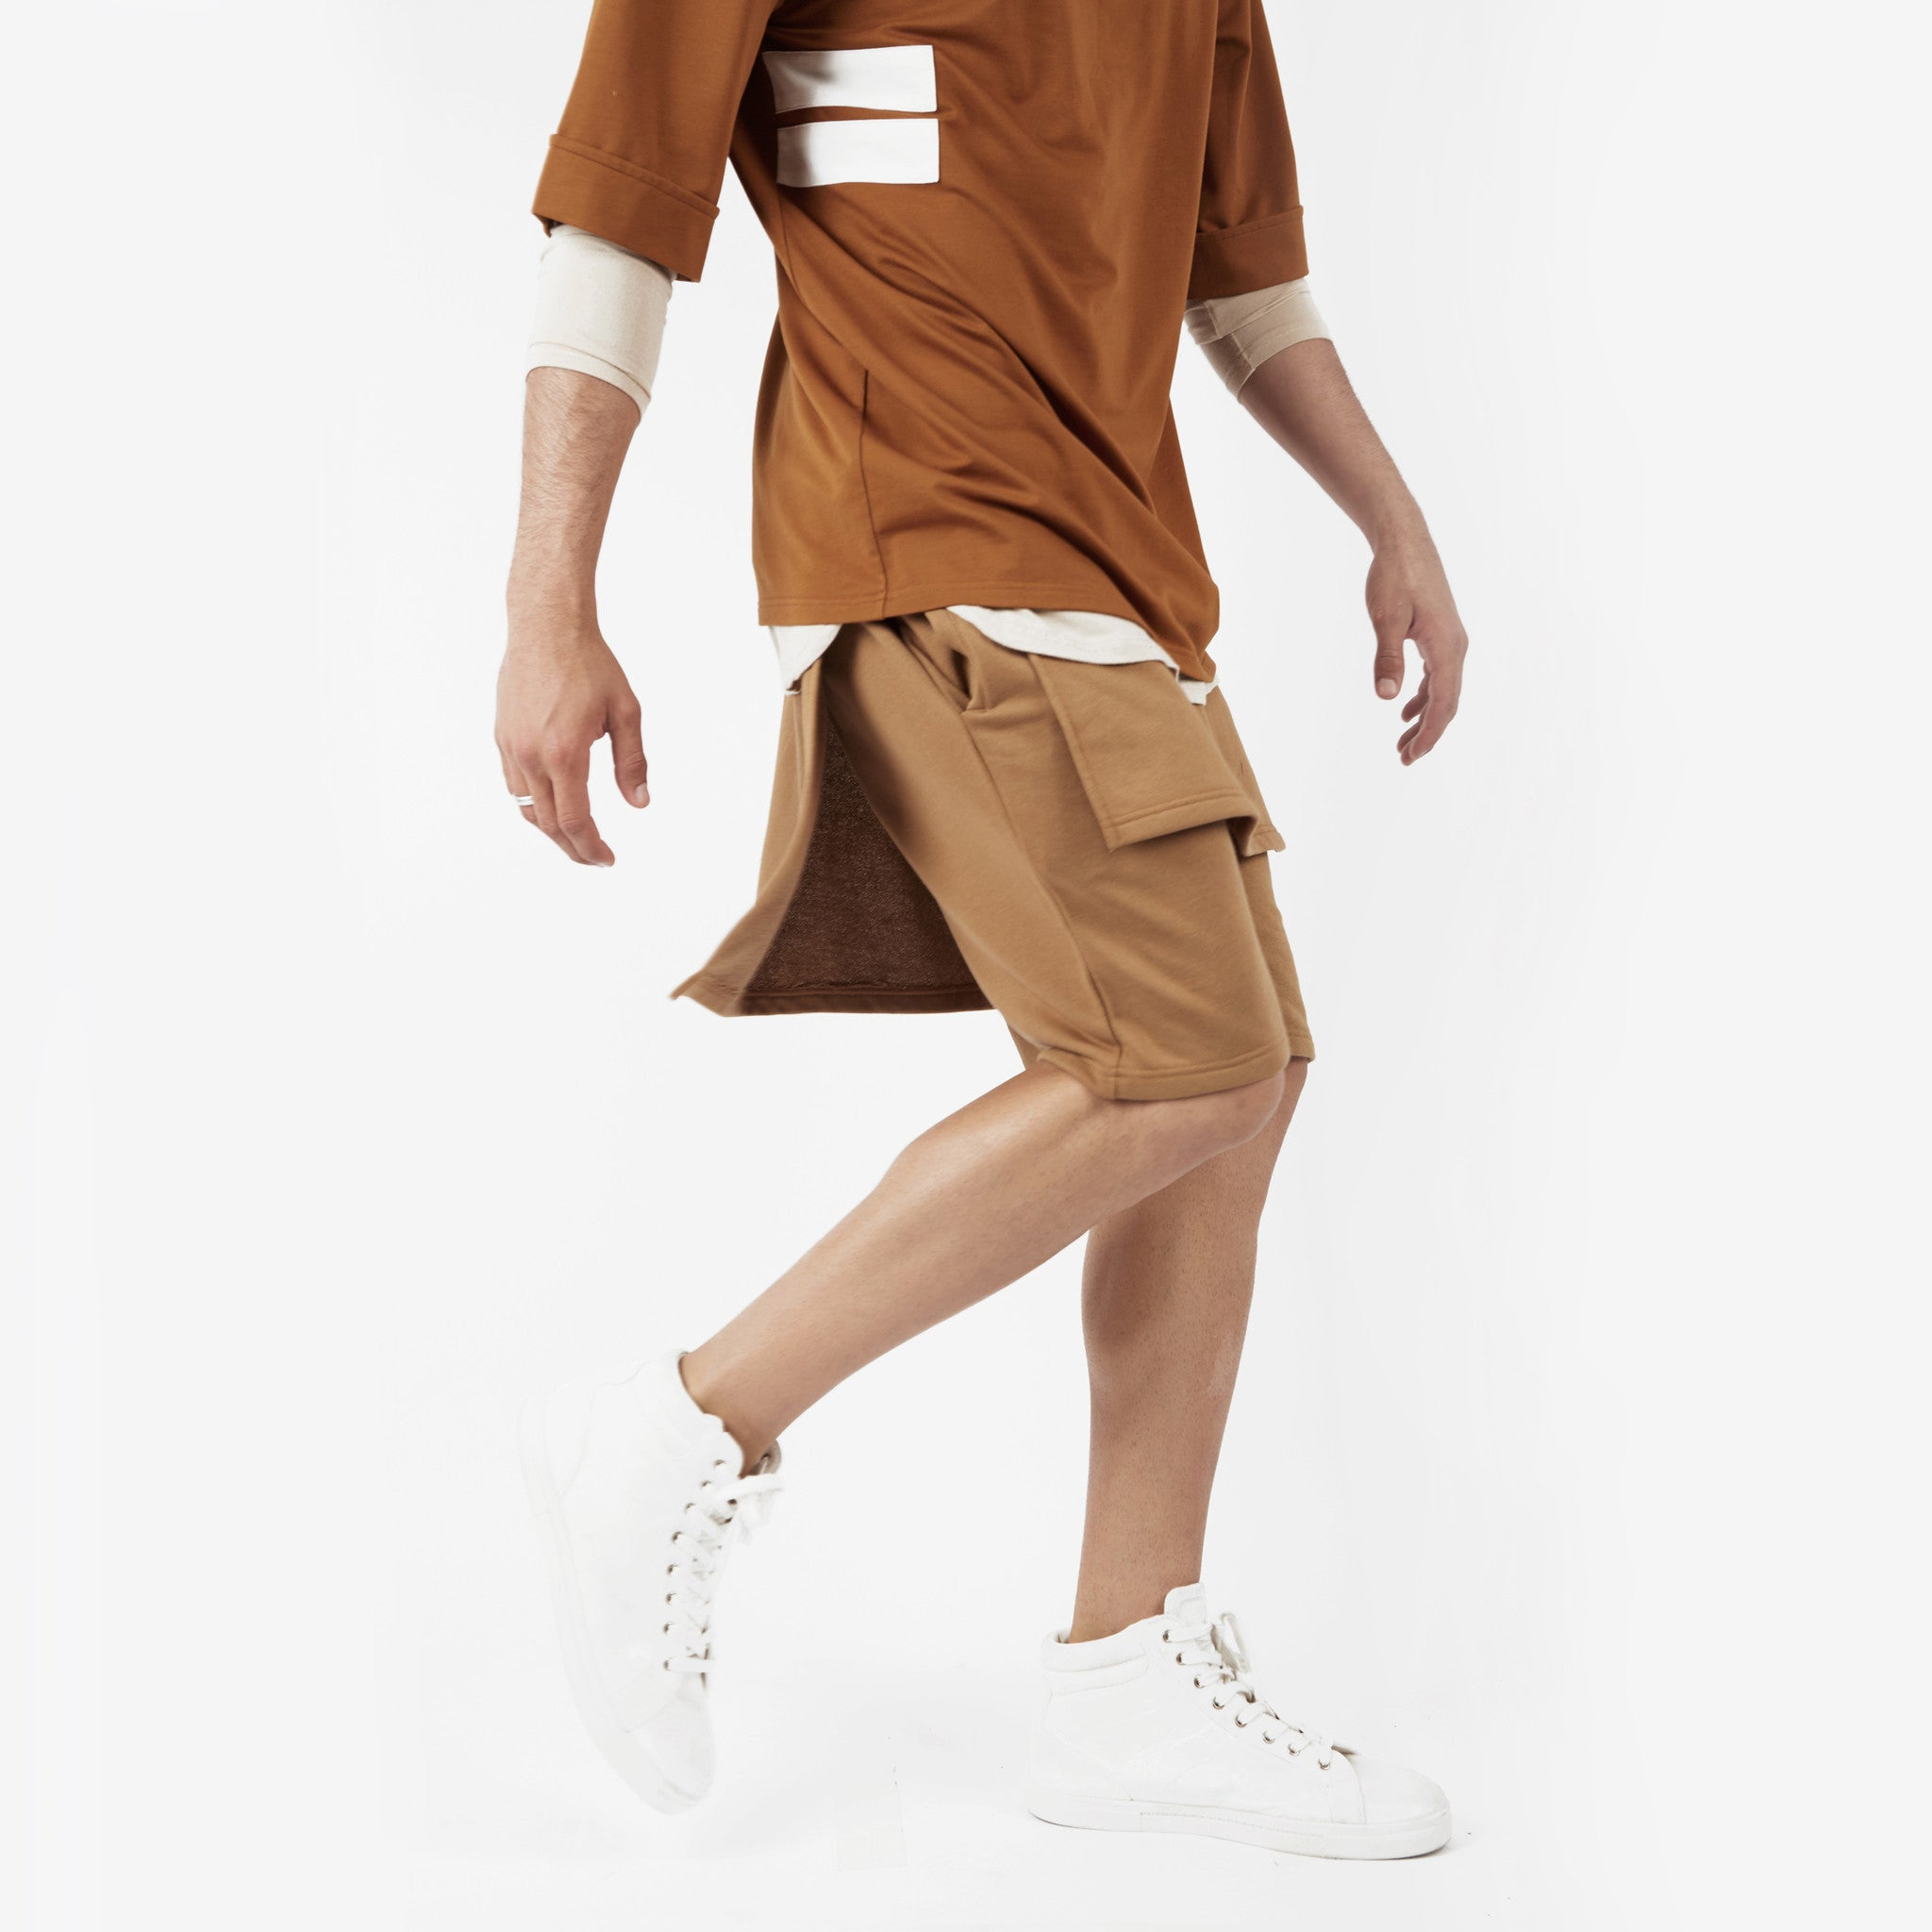 SR054 Layered Shorts - Tan - underated london - underatedco - 4